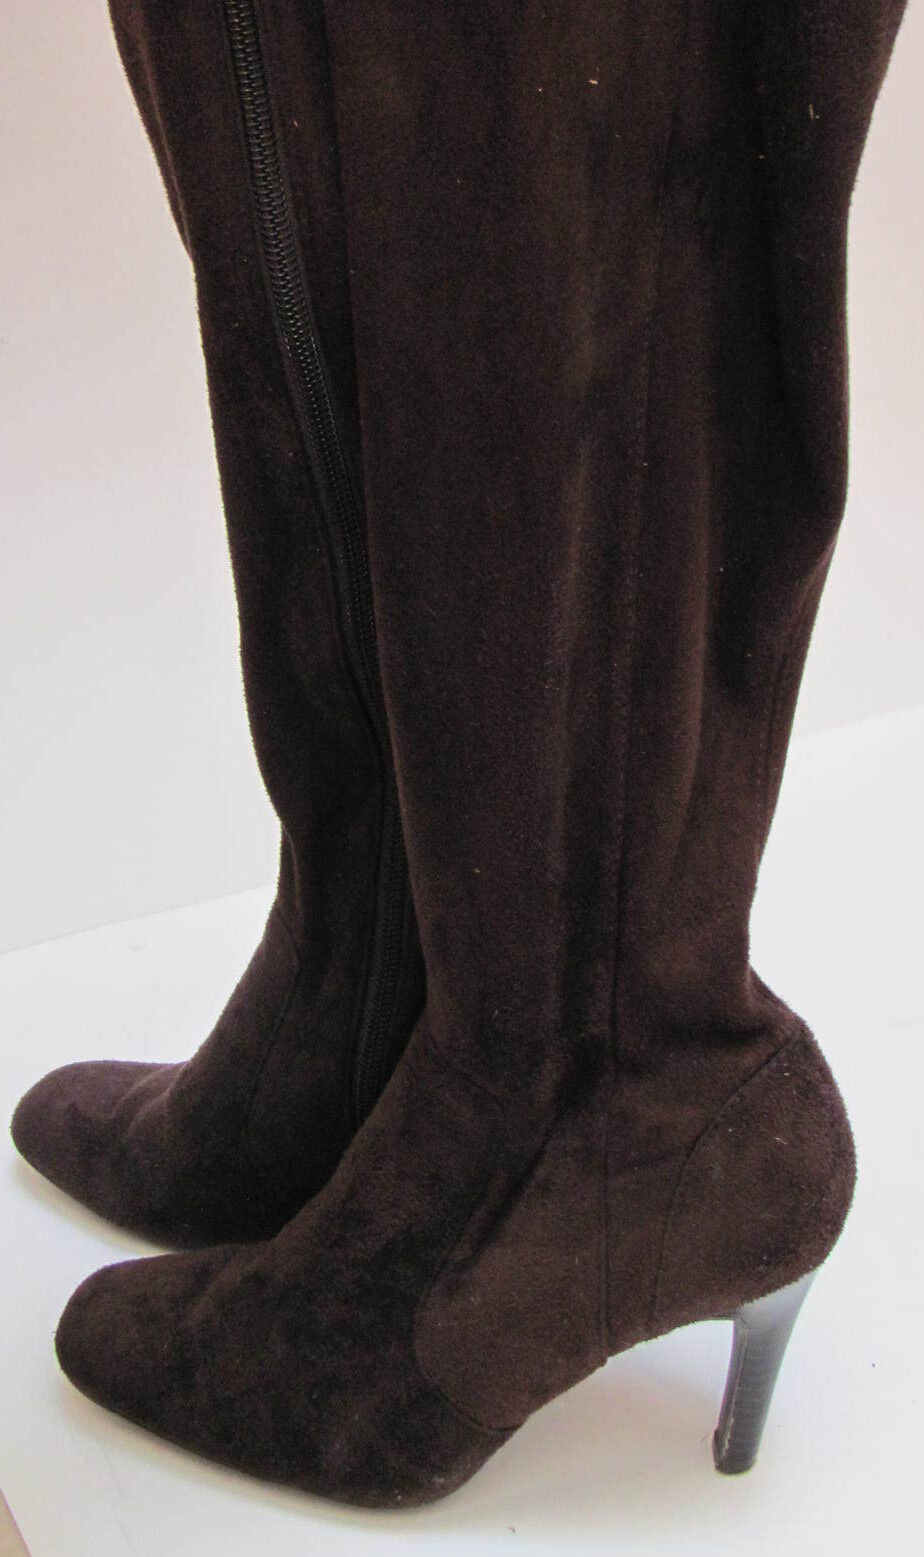 Womens Isaac Mizrahi Brown Suede-like Fabric Tall High Heel Boots Size 6 1/2